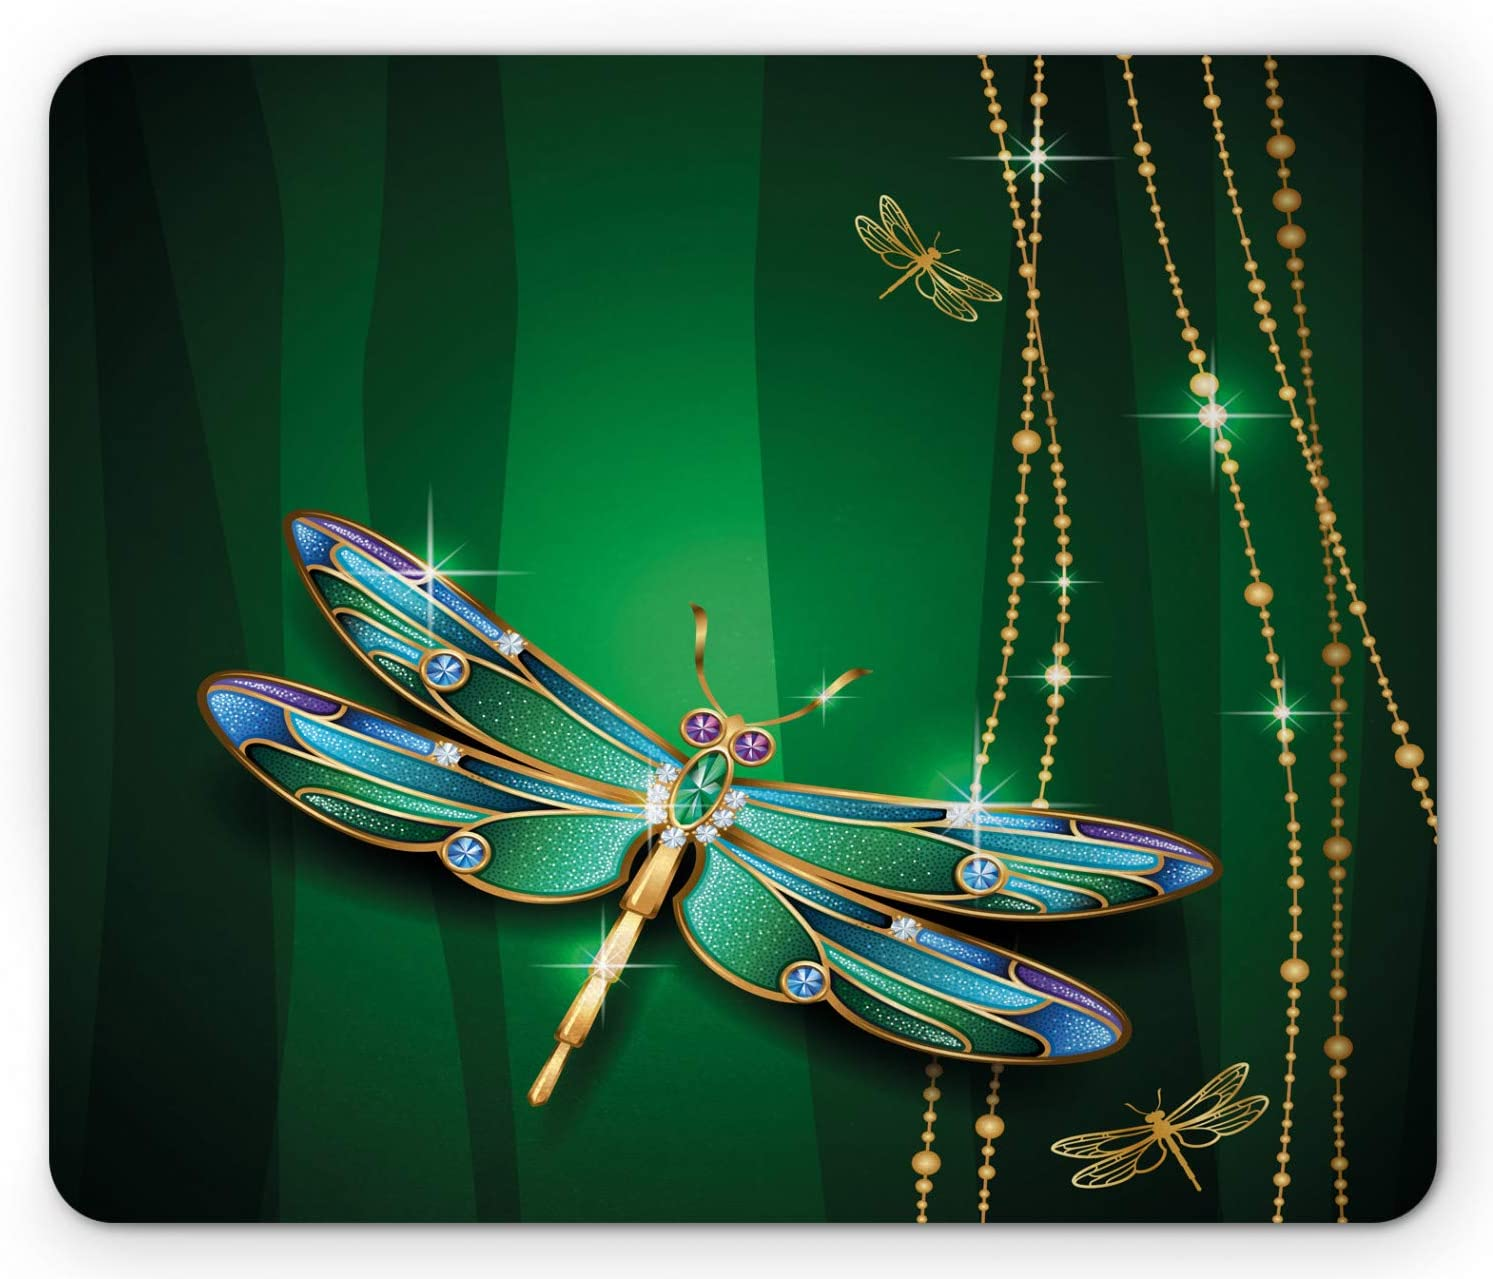 Ambesonne Dragonfly Mouse Pad, Vivids in Gemstone Crystal Diamond Shapes Graphic Effects, Rectangle Non-Slip Rubber Mousepad, Standard Size, Hunter Green